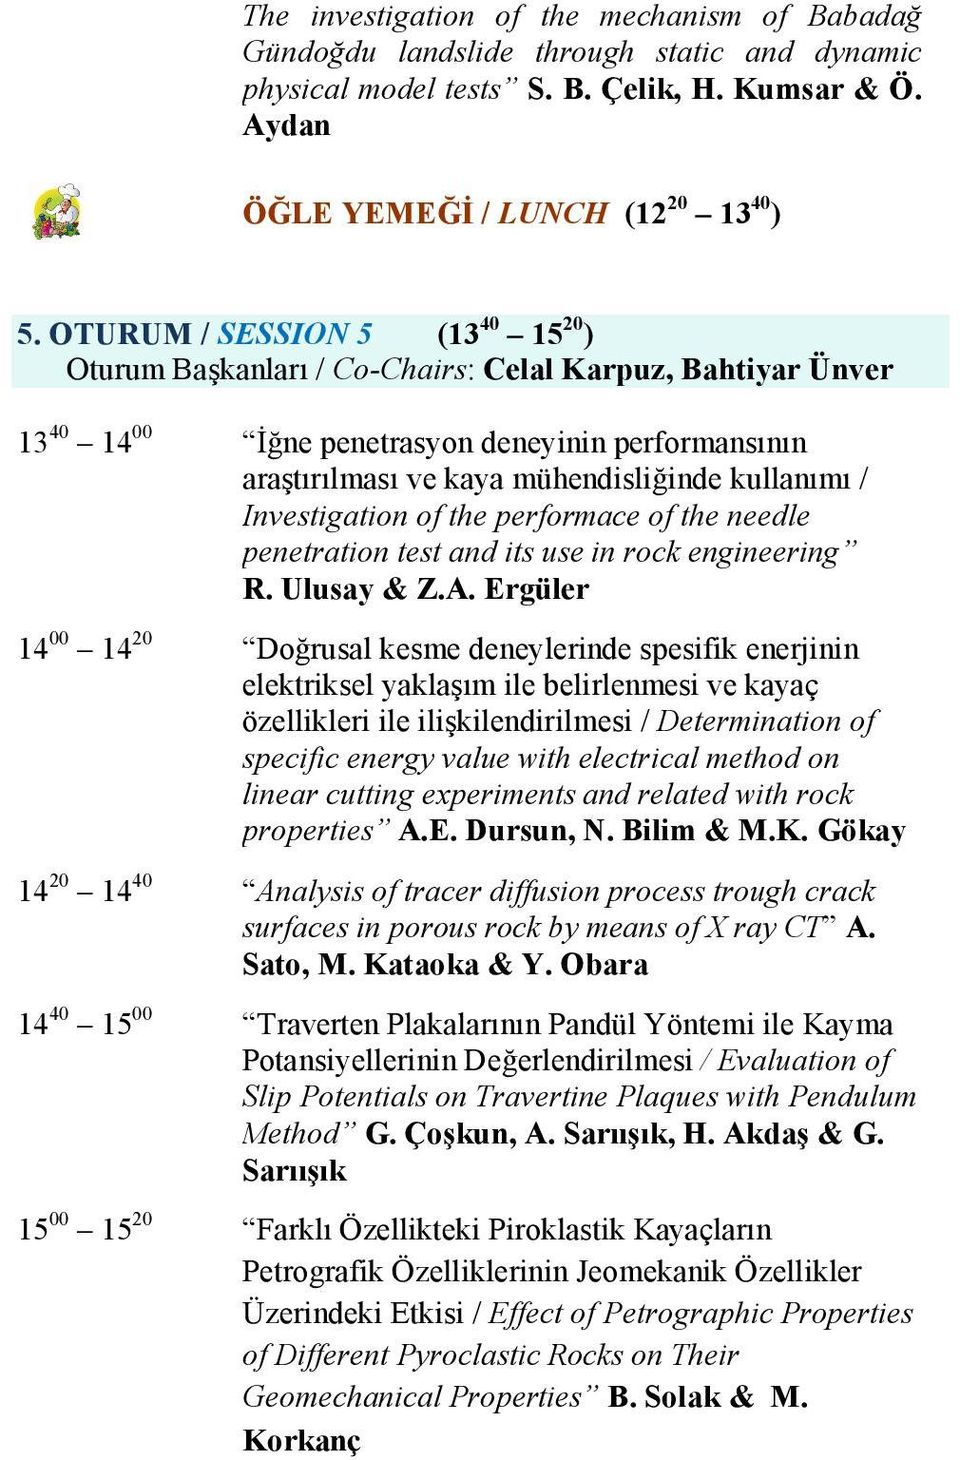 Investigation of the performace of the needle penetration test and its use in rock engineering R. Ulusay & Z.A.